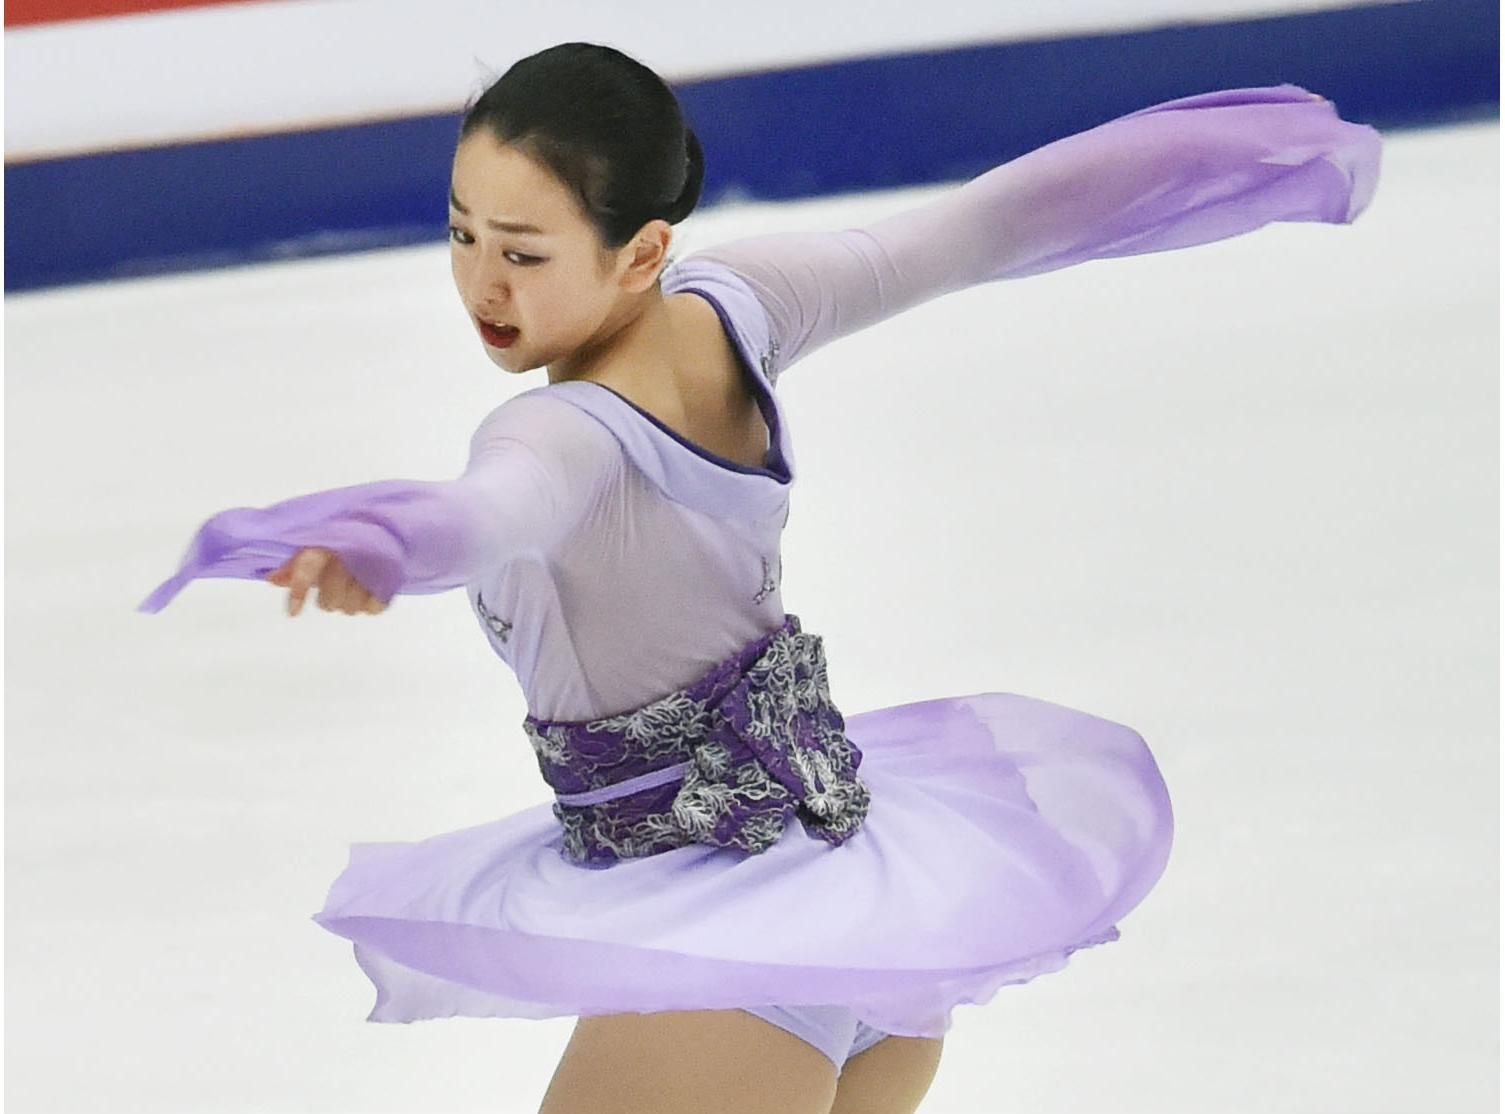 Mao Asada performs her free program at the Cup of China on Saturday in Beijing. Mao won the two-day competition with 197.48 points. | KYODO (1505×1114) http://www.japantimes.co.jp/sports/2015/11/07/figure-skating/mao-claims-cup-of-china-title-hongo-places-second/#.VkMdq9LhDMx